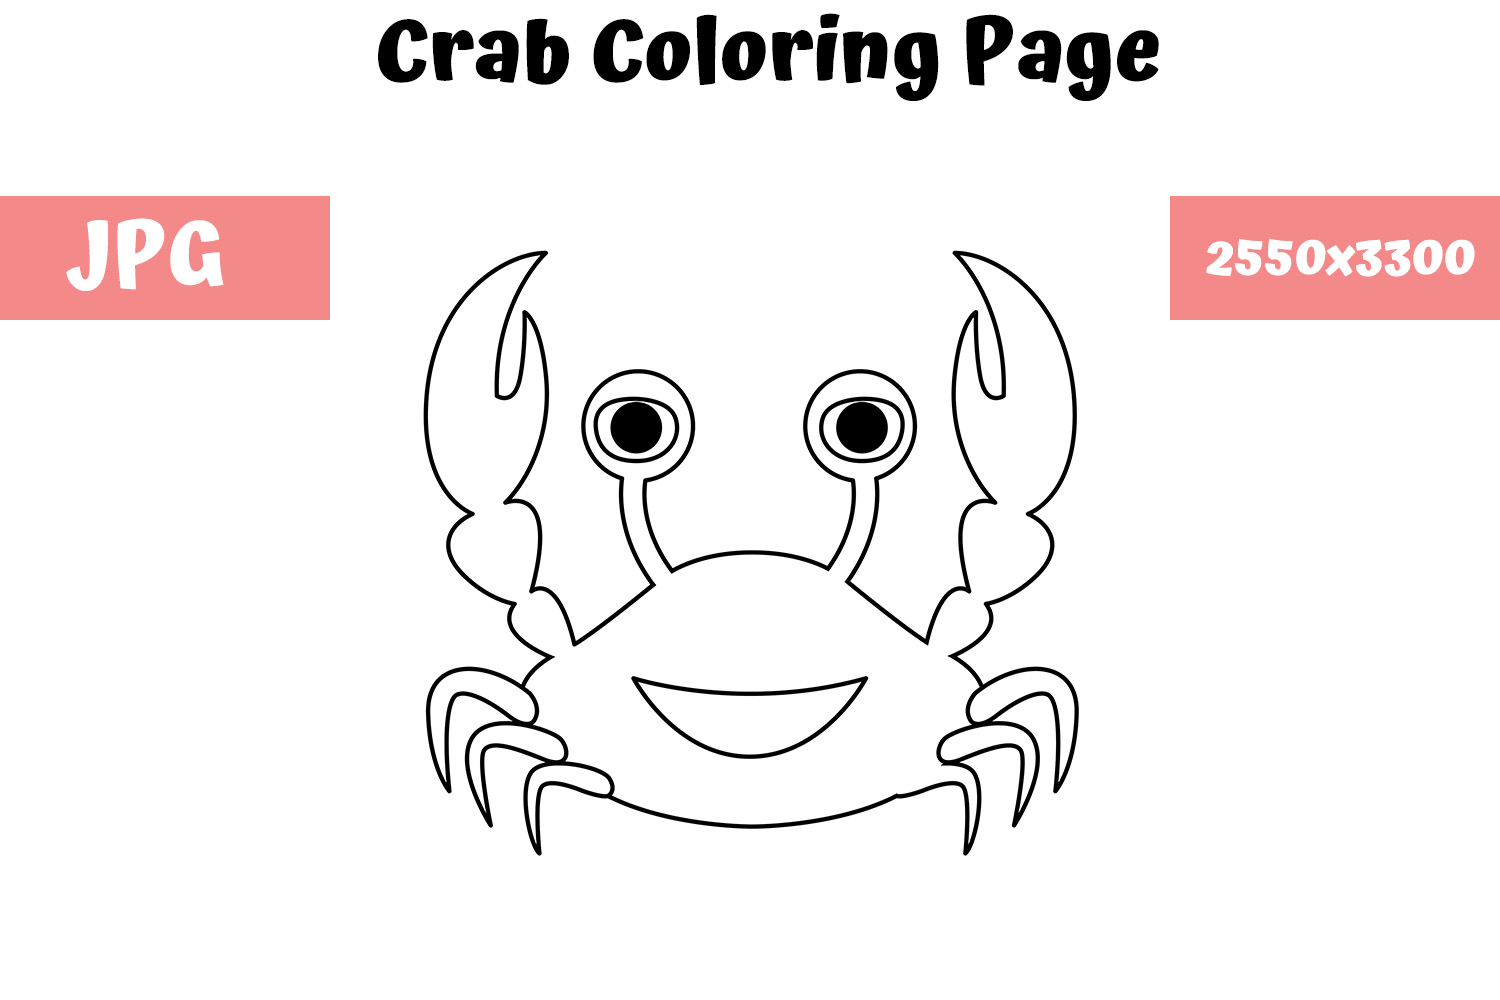 Download Free Crab Coloring Page For Kids Graphic By Mybeautifulfiles Creative Fabrica for Cricut Explore, Silhouette and other cutting machines.